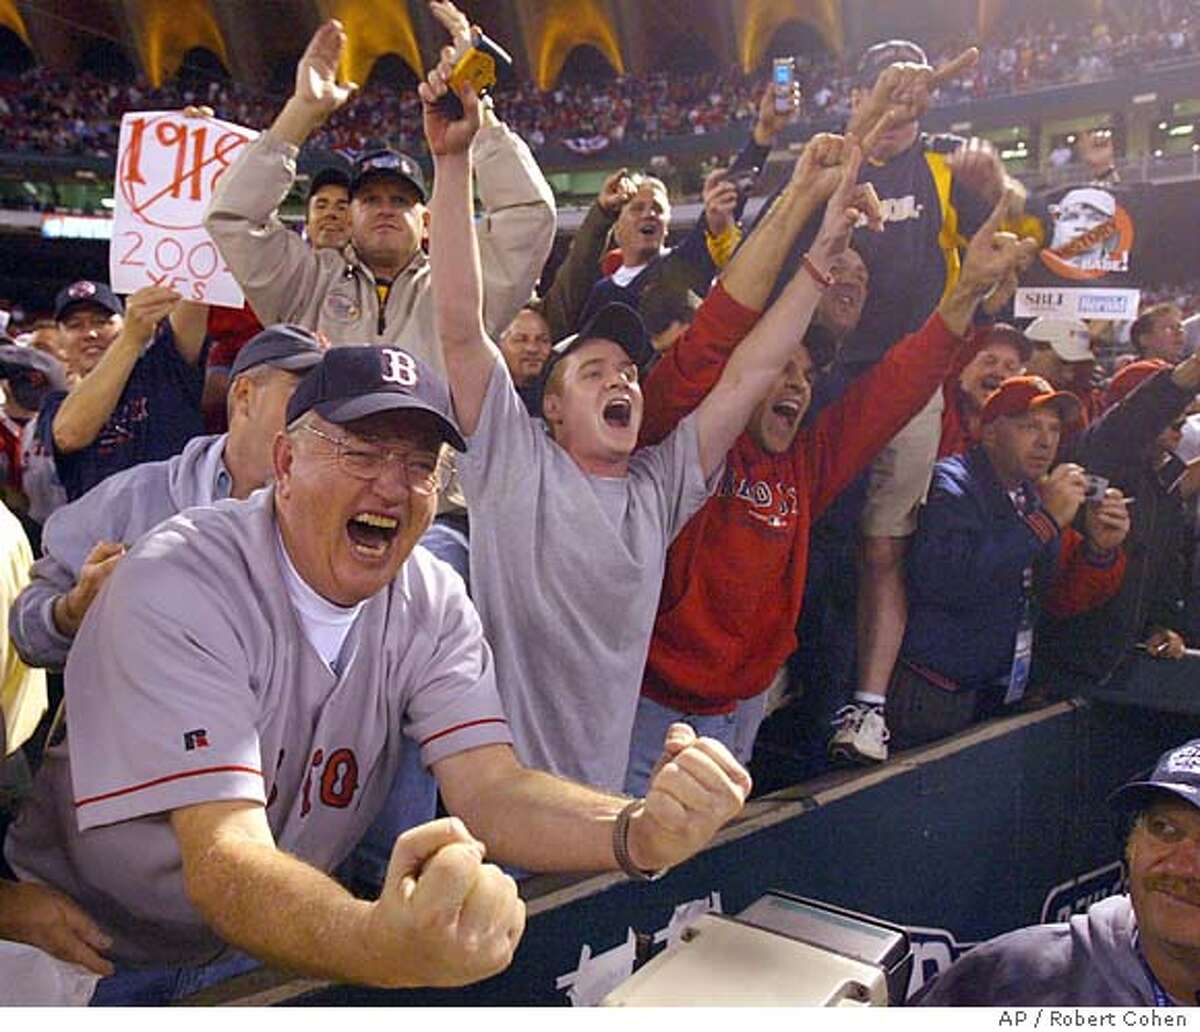 Boston Red Sox Connecticut fans: 36% FairfieldCountyfans: 13% HartfordCountyfans: 50% Middlesex/New HavenCounties fans: 29% Tolland/Windham/New LondonCounties fans: 54%